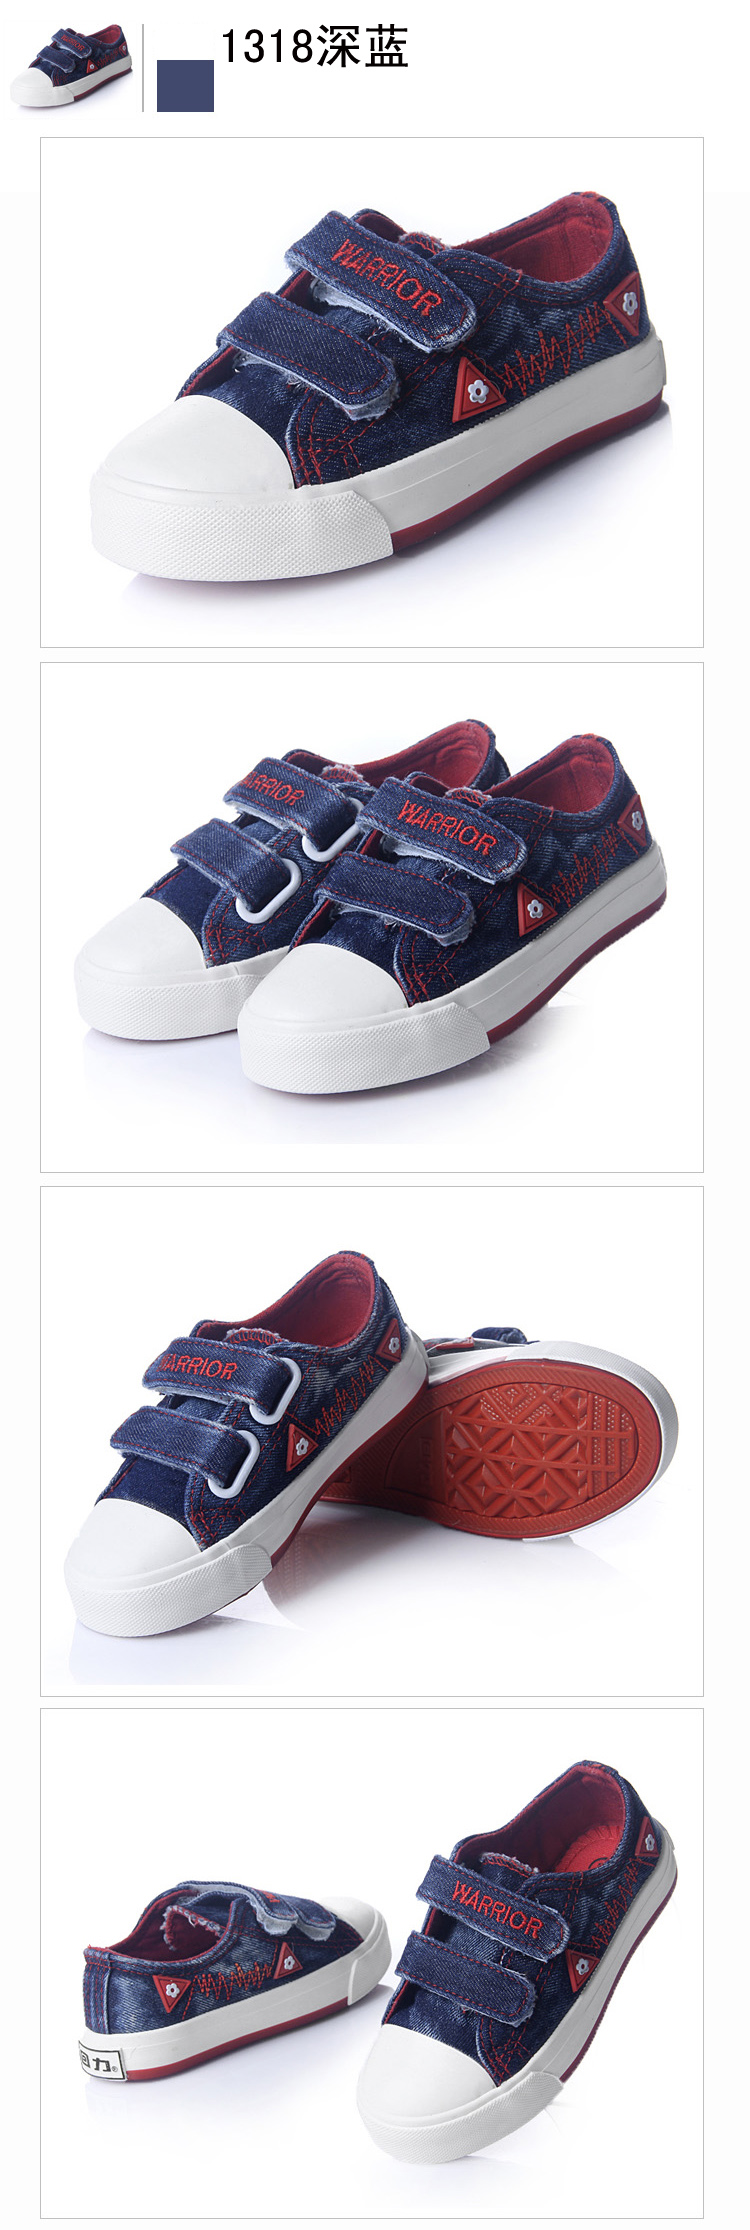 New 1620 genuine 1529 Shanghai Warrior shoes 1521 boys and girls canvas shoes for children 1316 Super Ikkyu